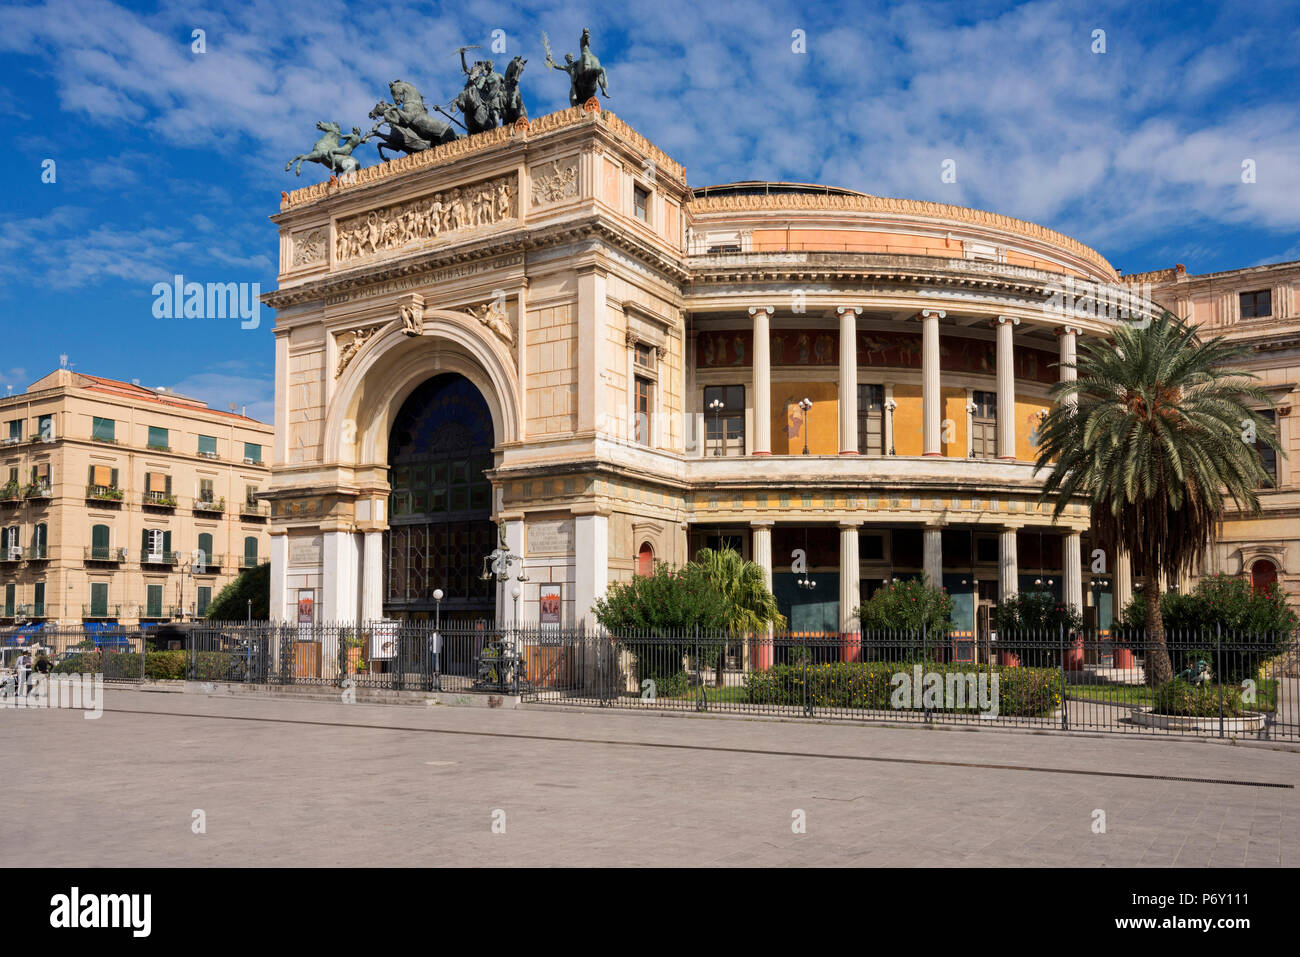 Politeama Theater, Palermo, Sicily, Italy, Europe - Stock Image